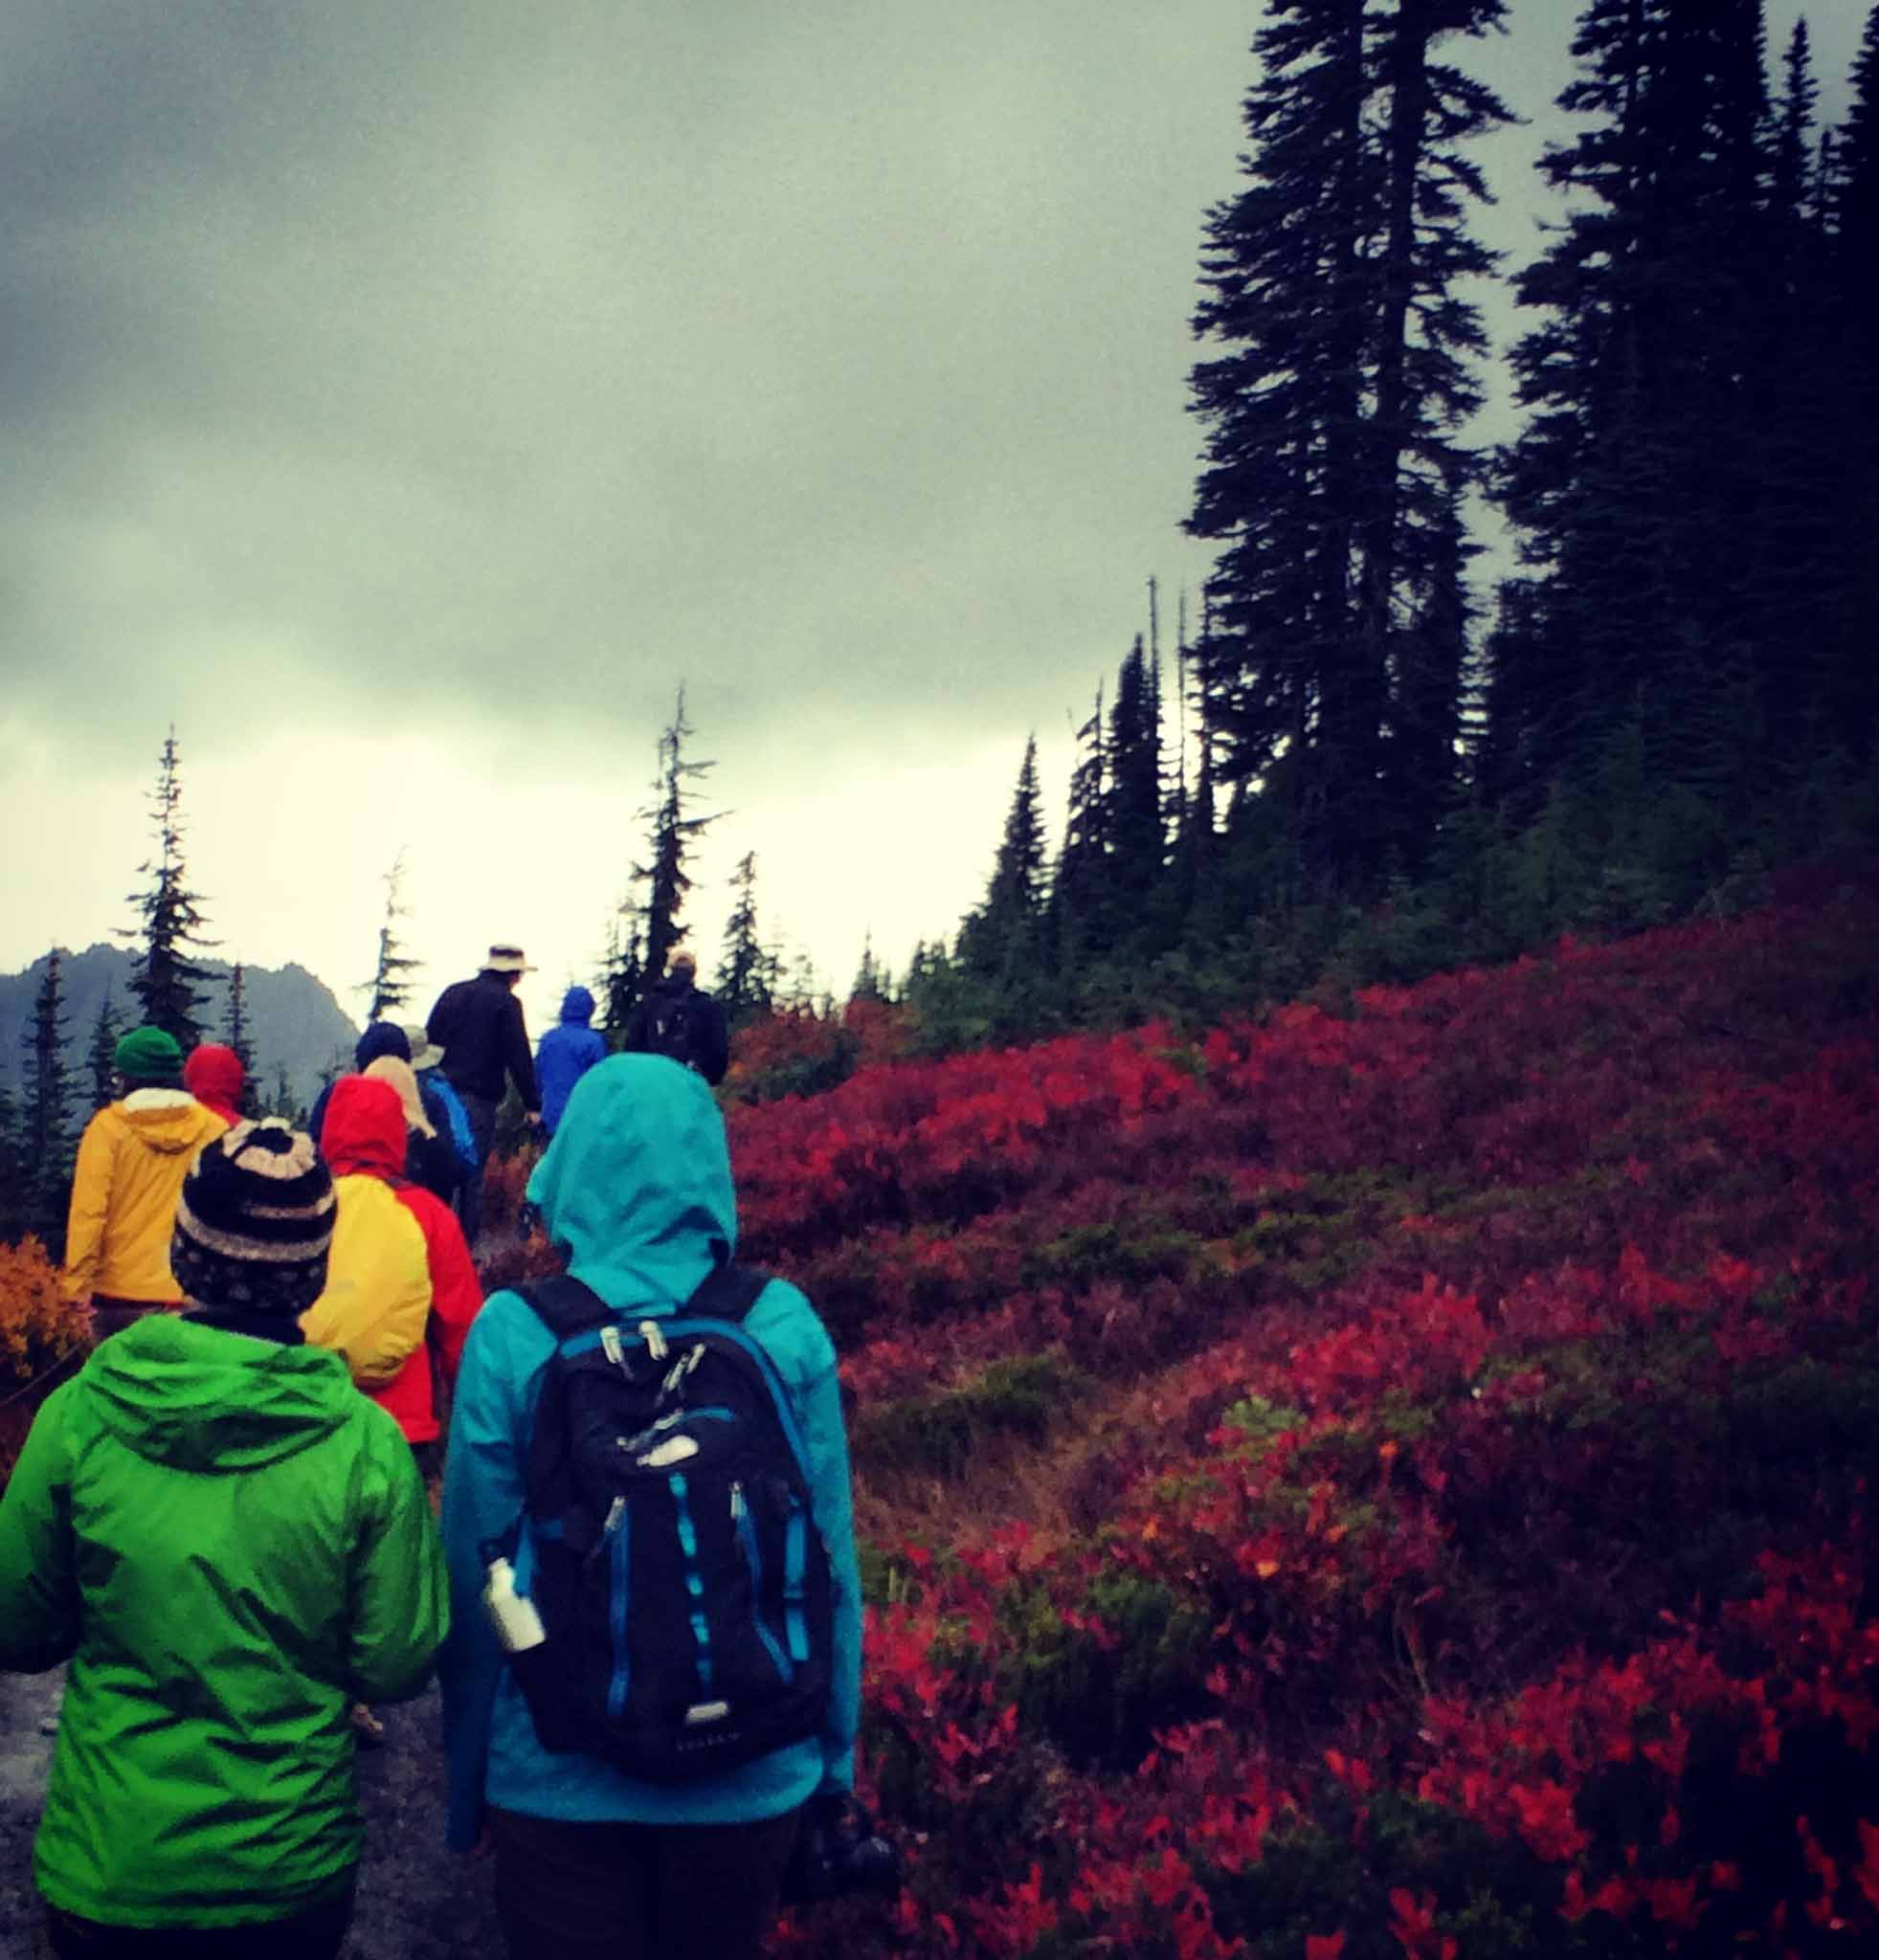 CEHC retreaters hike to Mt. Rainier, Washington. Photograph courtesy of the author.